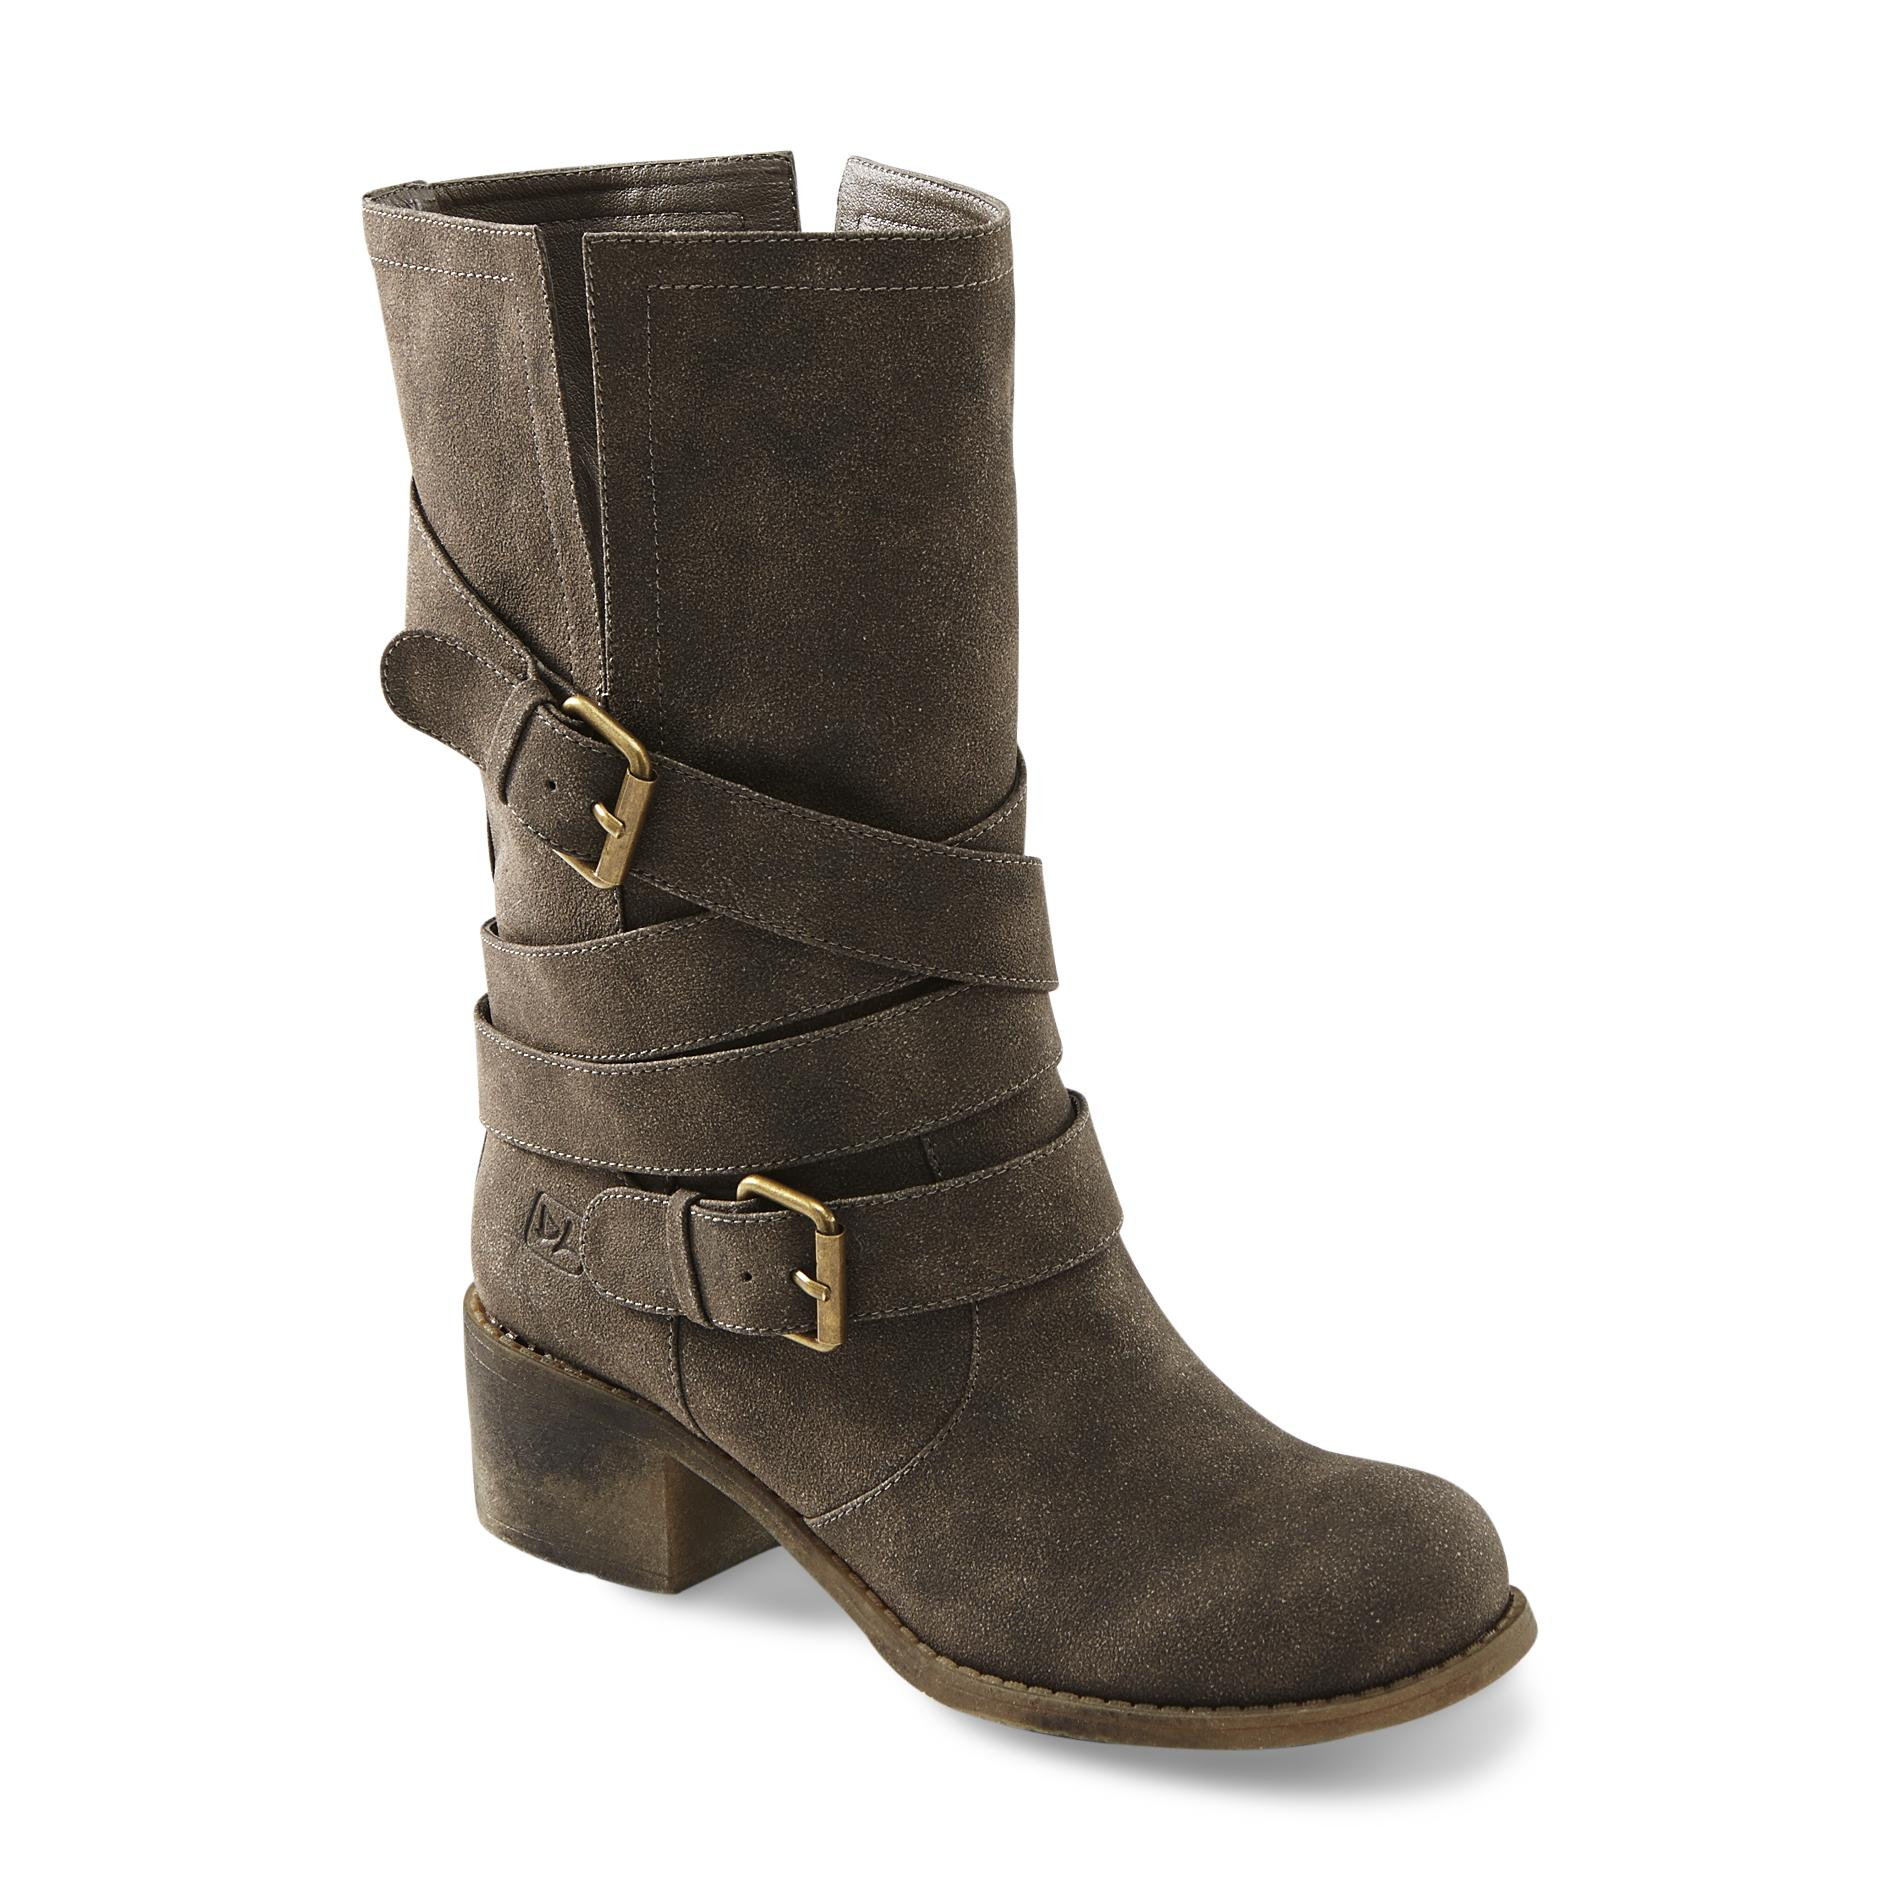 """Dirty Laundry Women's Check It Out 10"""" Olive Riding Boot PartNumber: 054VA79588312P MfgPartNumber: GCZQ06QUD"""